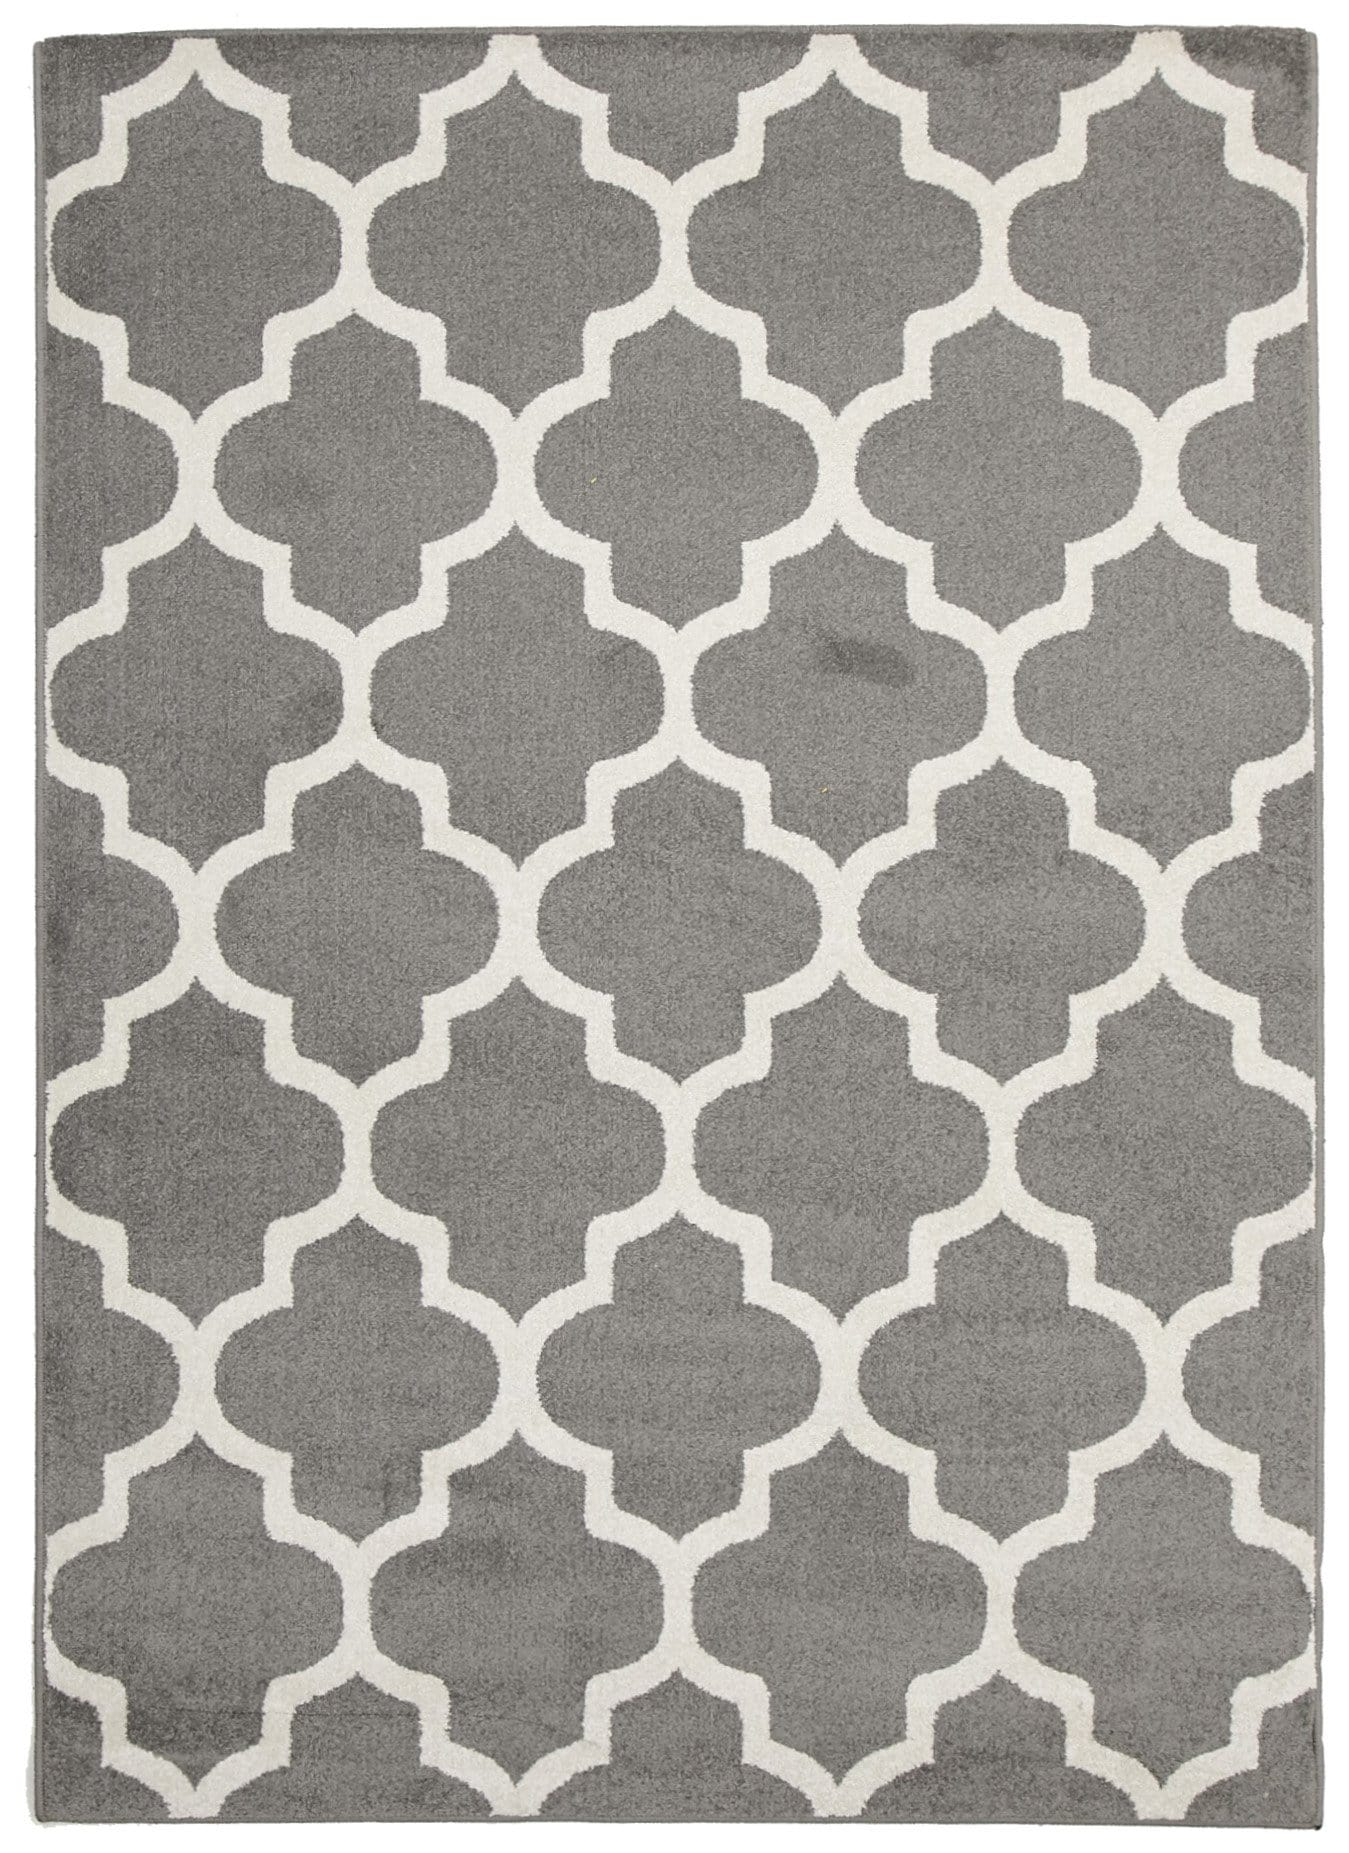 uk pics titolo trellis rug in us delivery free awesome savannah grey the seller